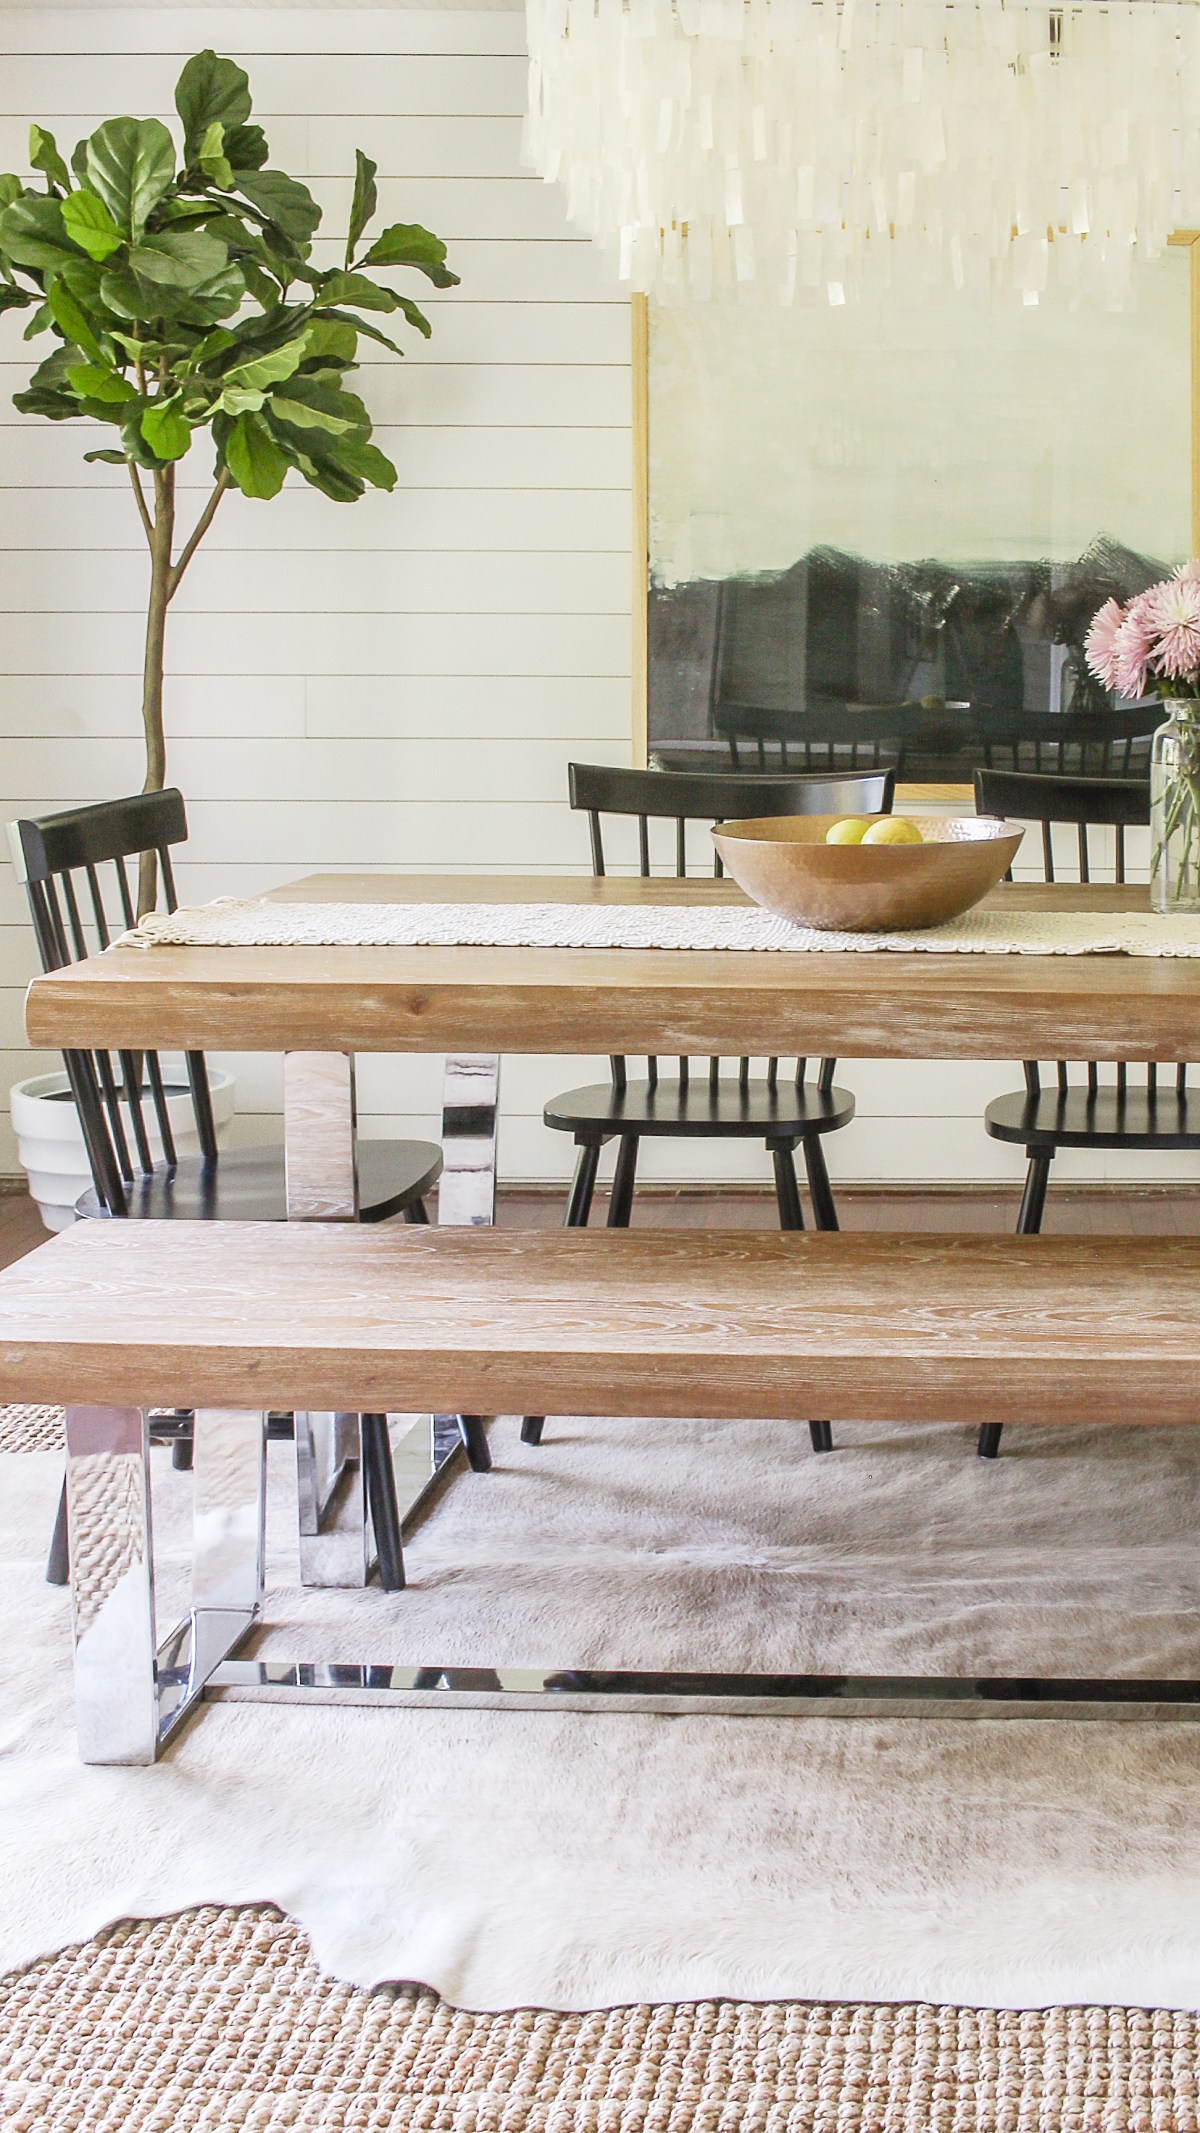 Modern Farmhouse Dining Room Reveal- Interior Design Ideas on a Budget